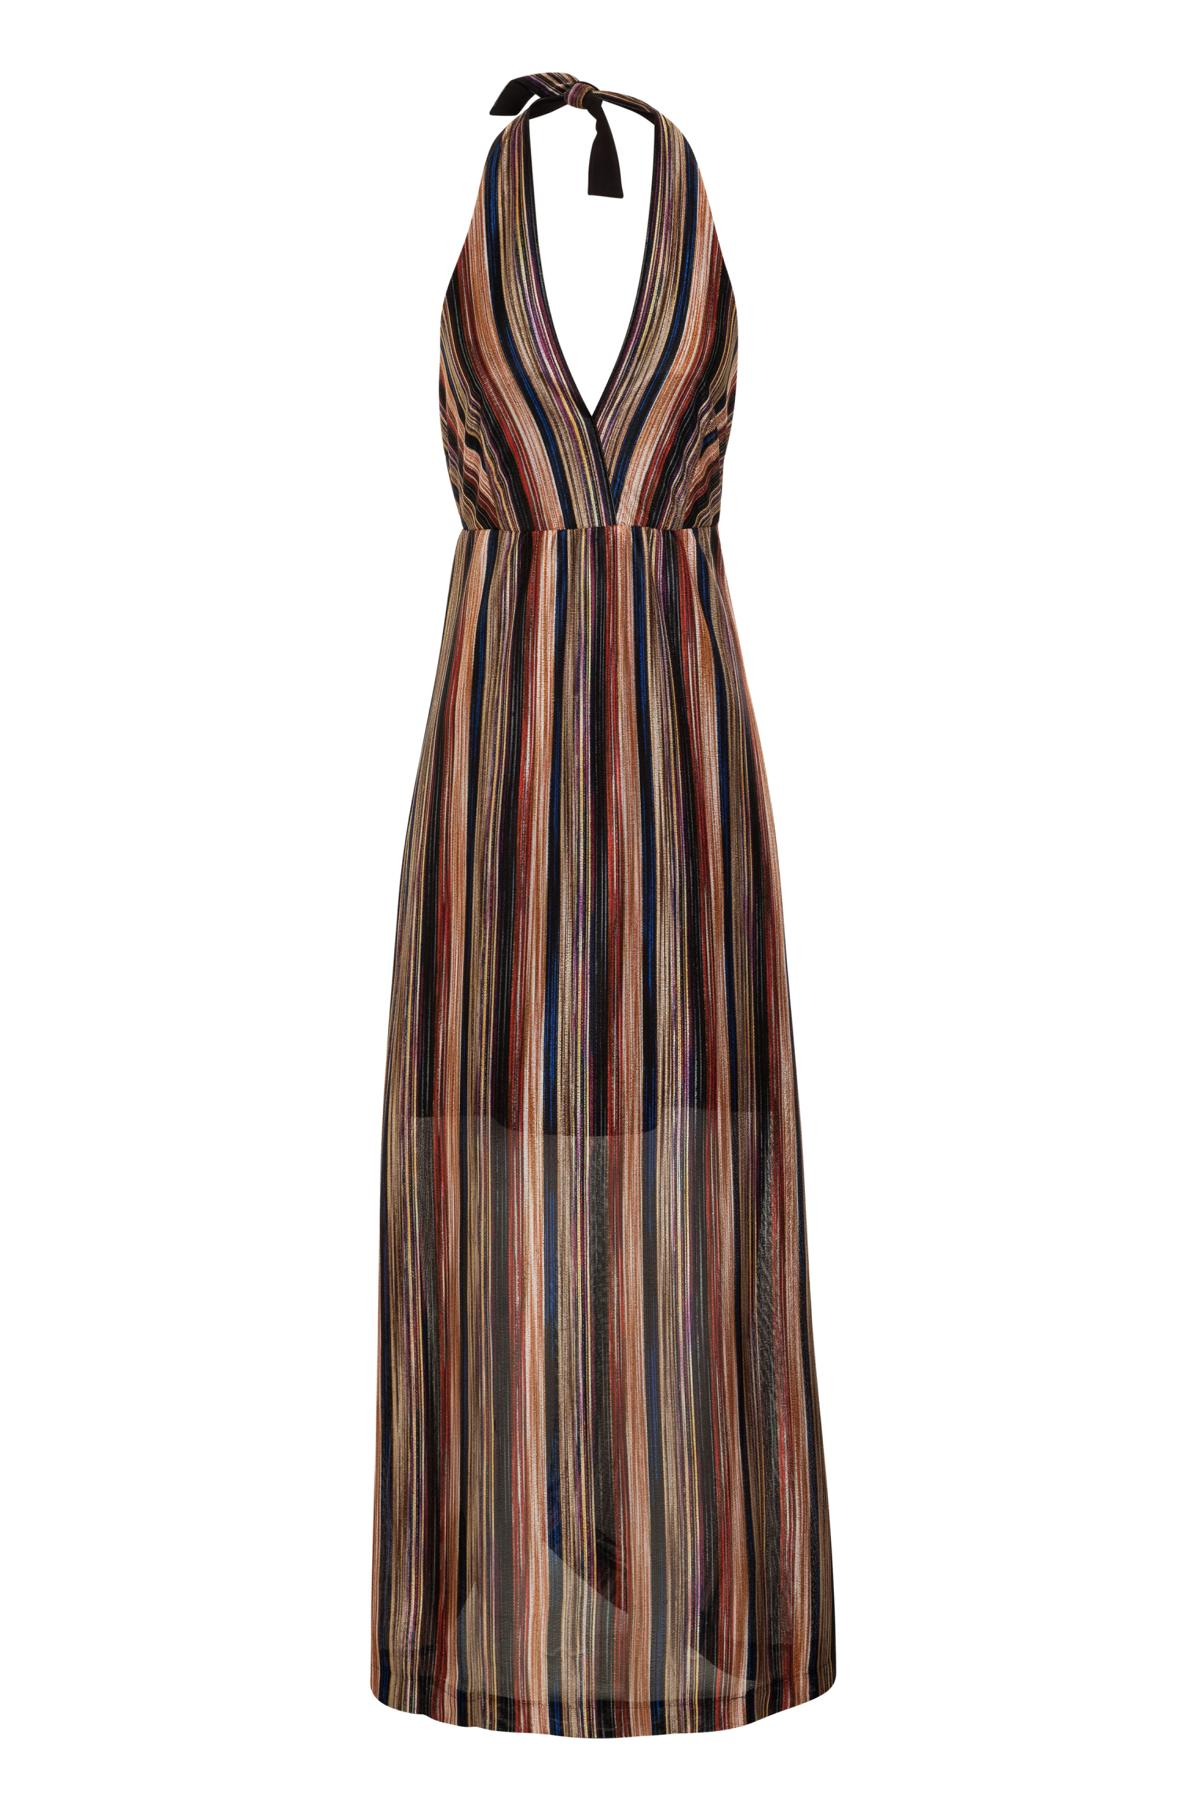 Ana Alcazar Maxi Dress Maryoky